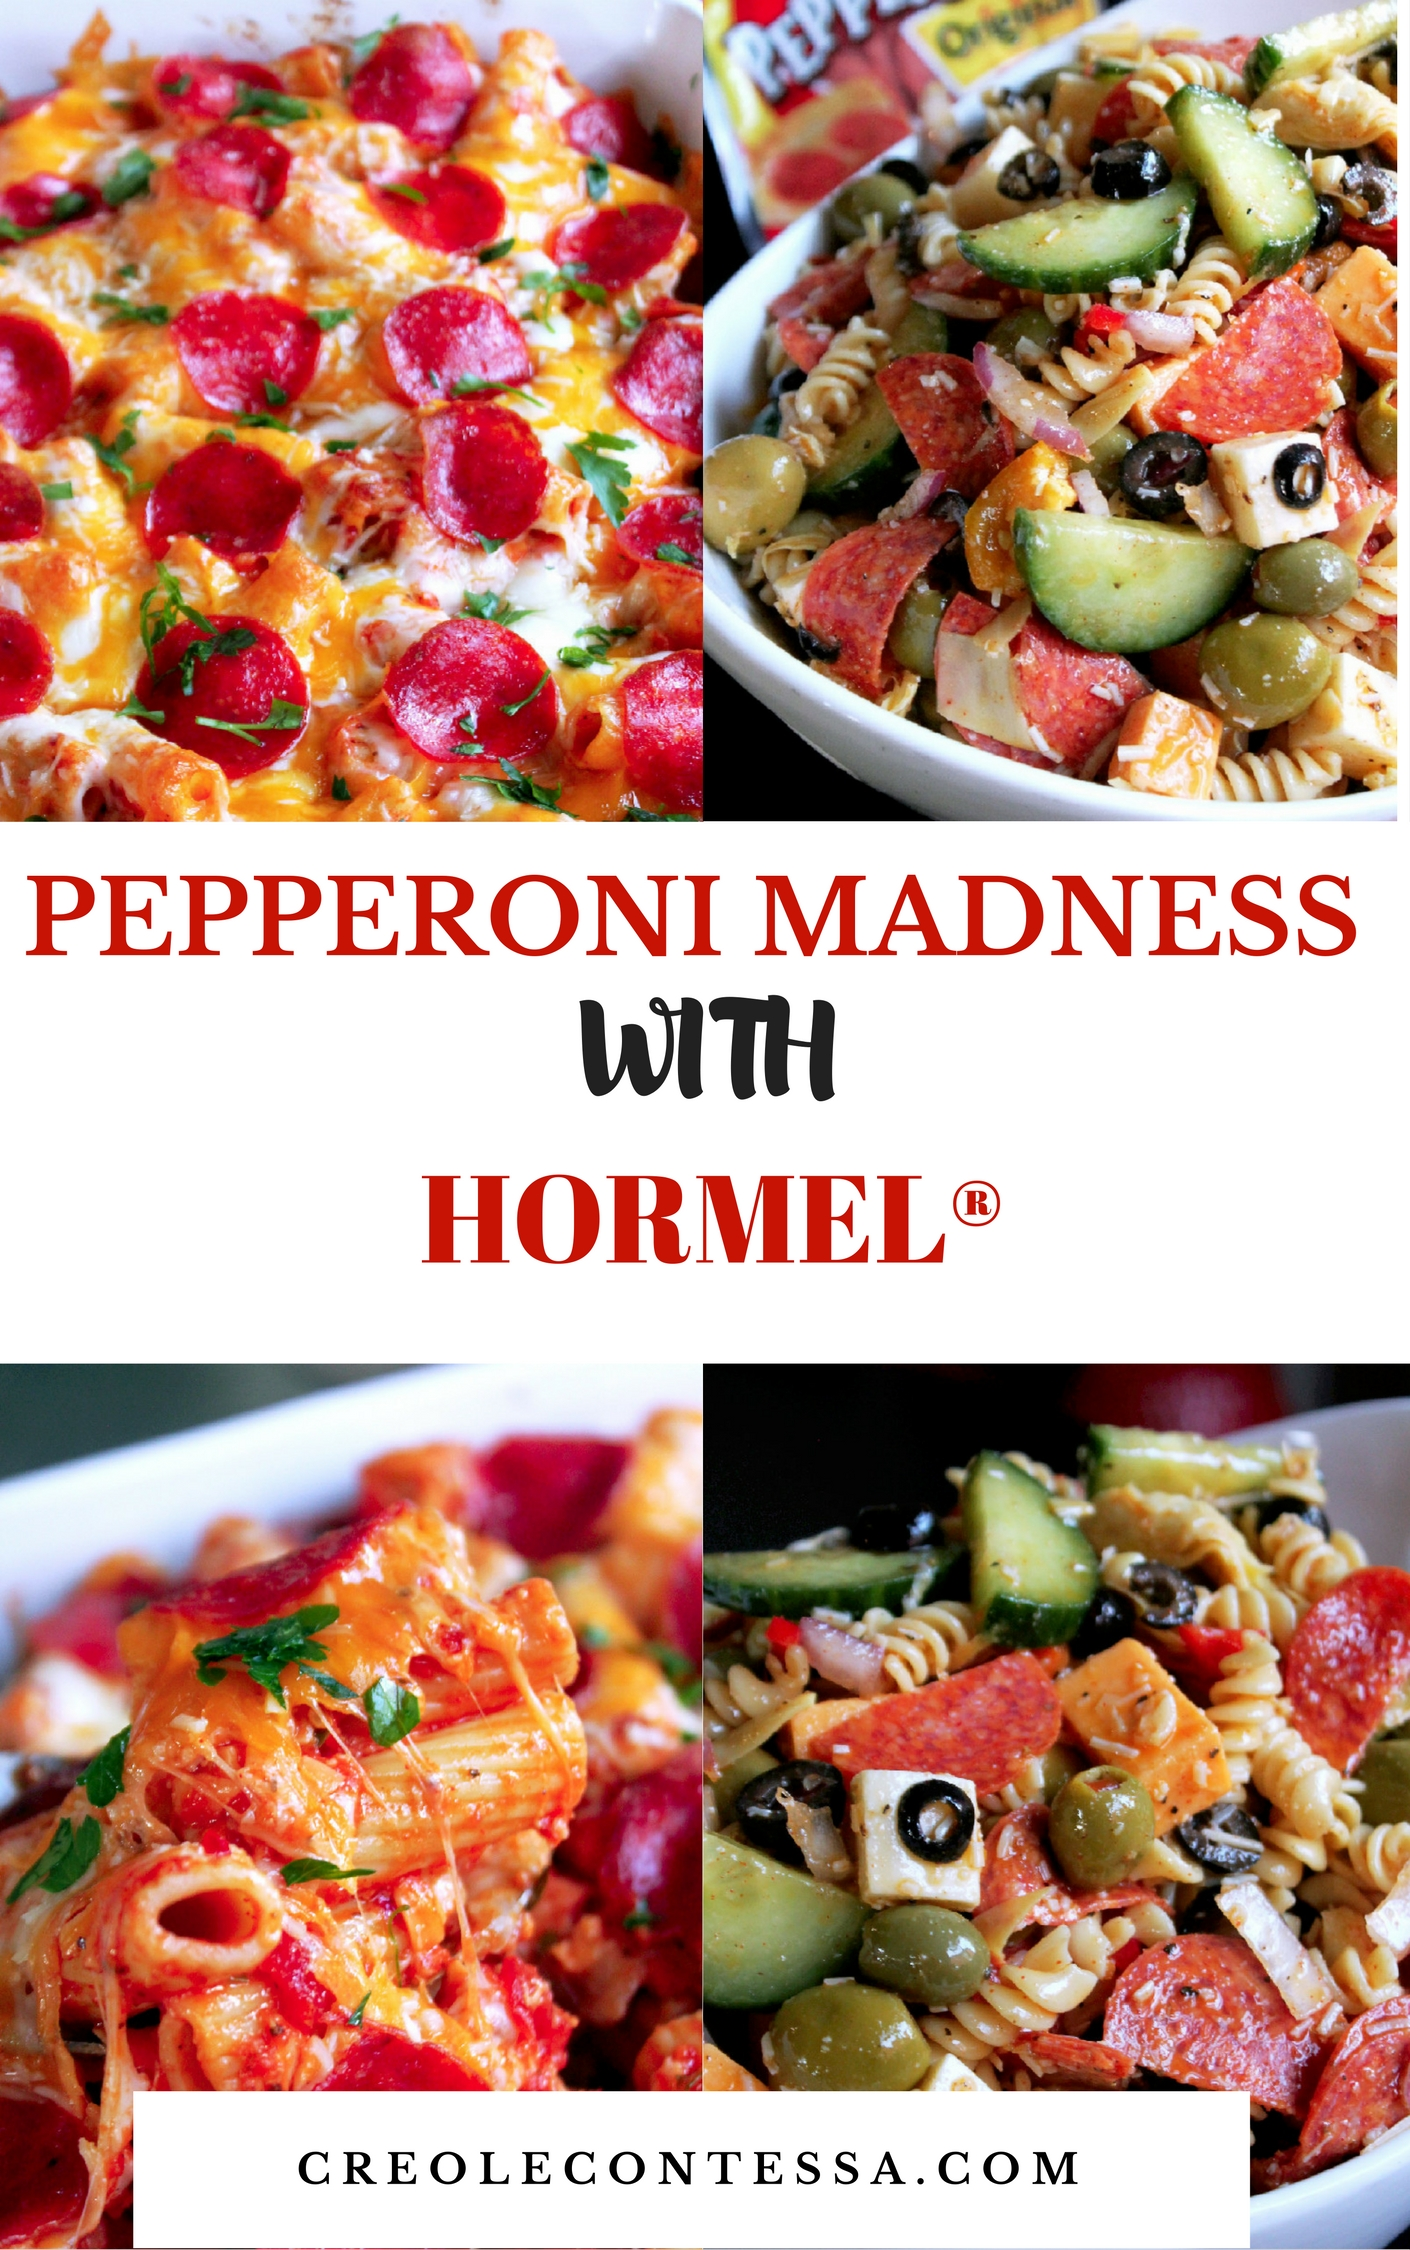 Pepperoni Madness with HORMEL® Cheesy Baked Pepperoni Pasta/Pepperoni Pasta Salad -Creole Contessa